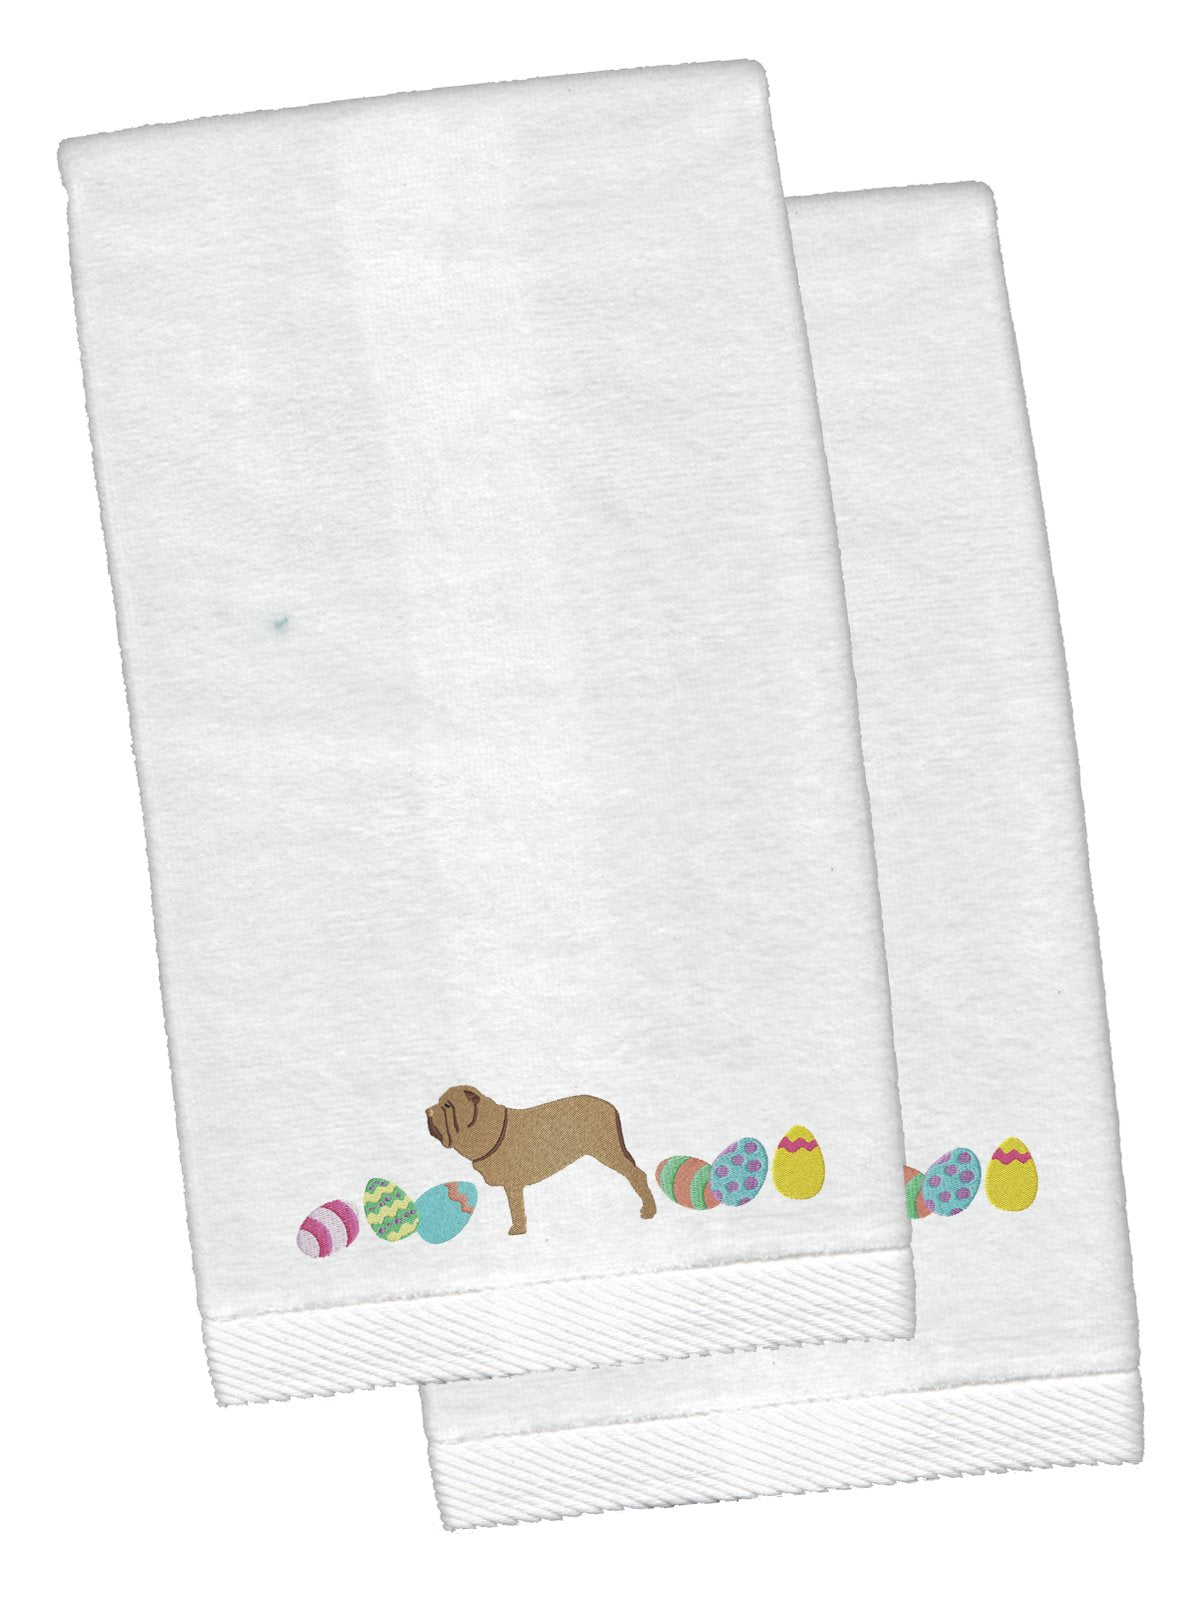 Neopolitan Mastiff Easter White Embroidered Plush Hand Towel Set of 2 CK1664KTEMB by Caroline's Treasures